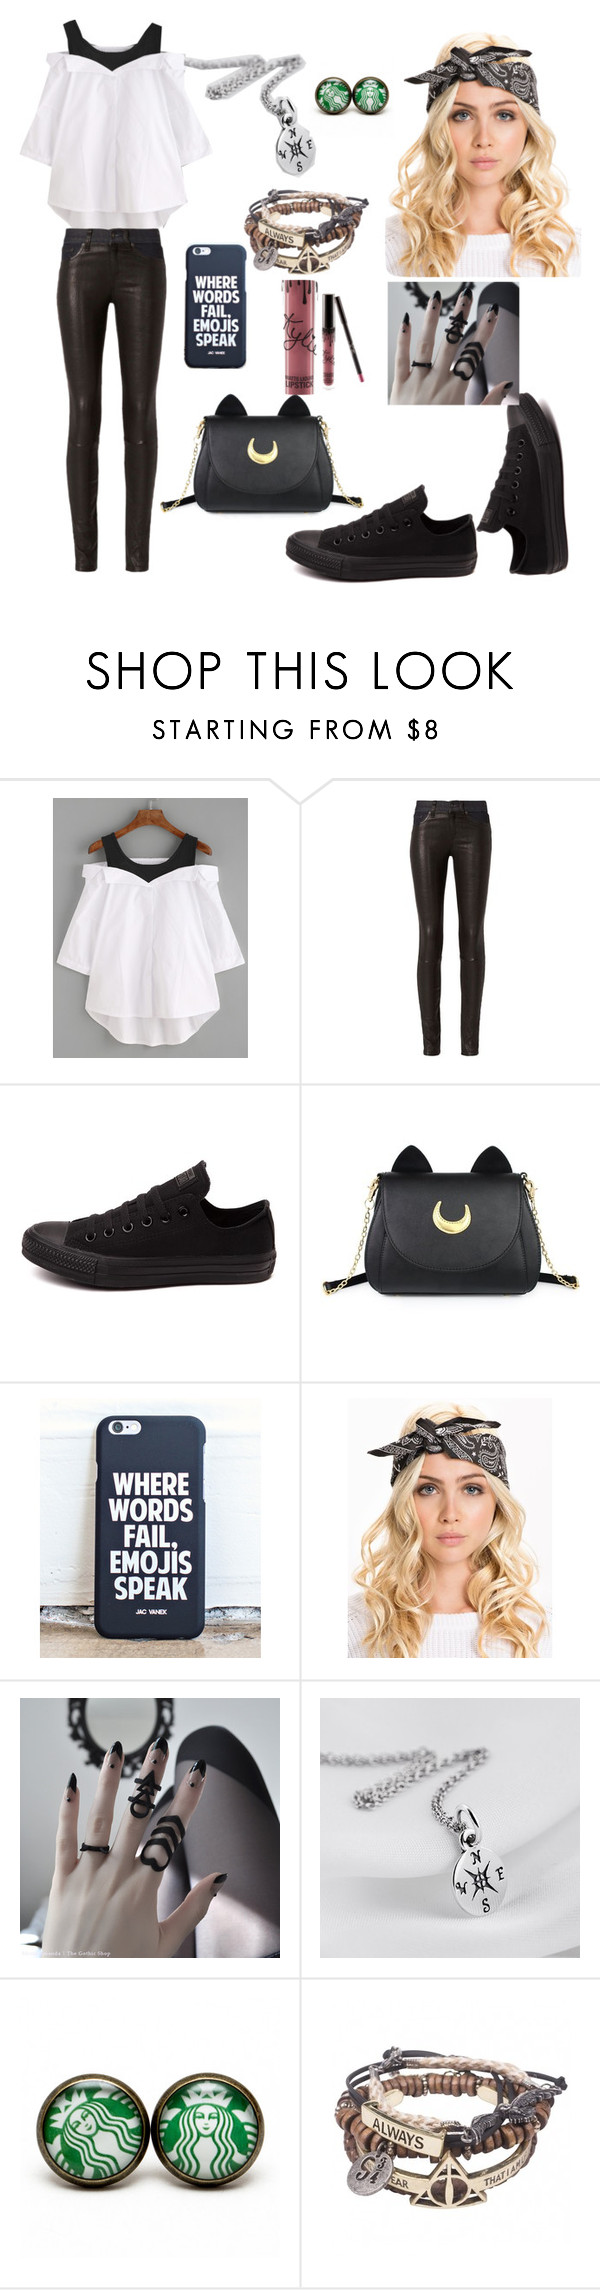 """""""Untitled #155"""" by courtneybells ❤ liked on Polyvore featuring beauty, rag & bone, Converse, Usagi and Kylie Cosmetics"""